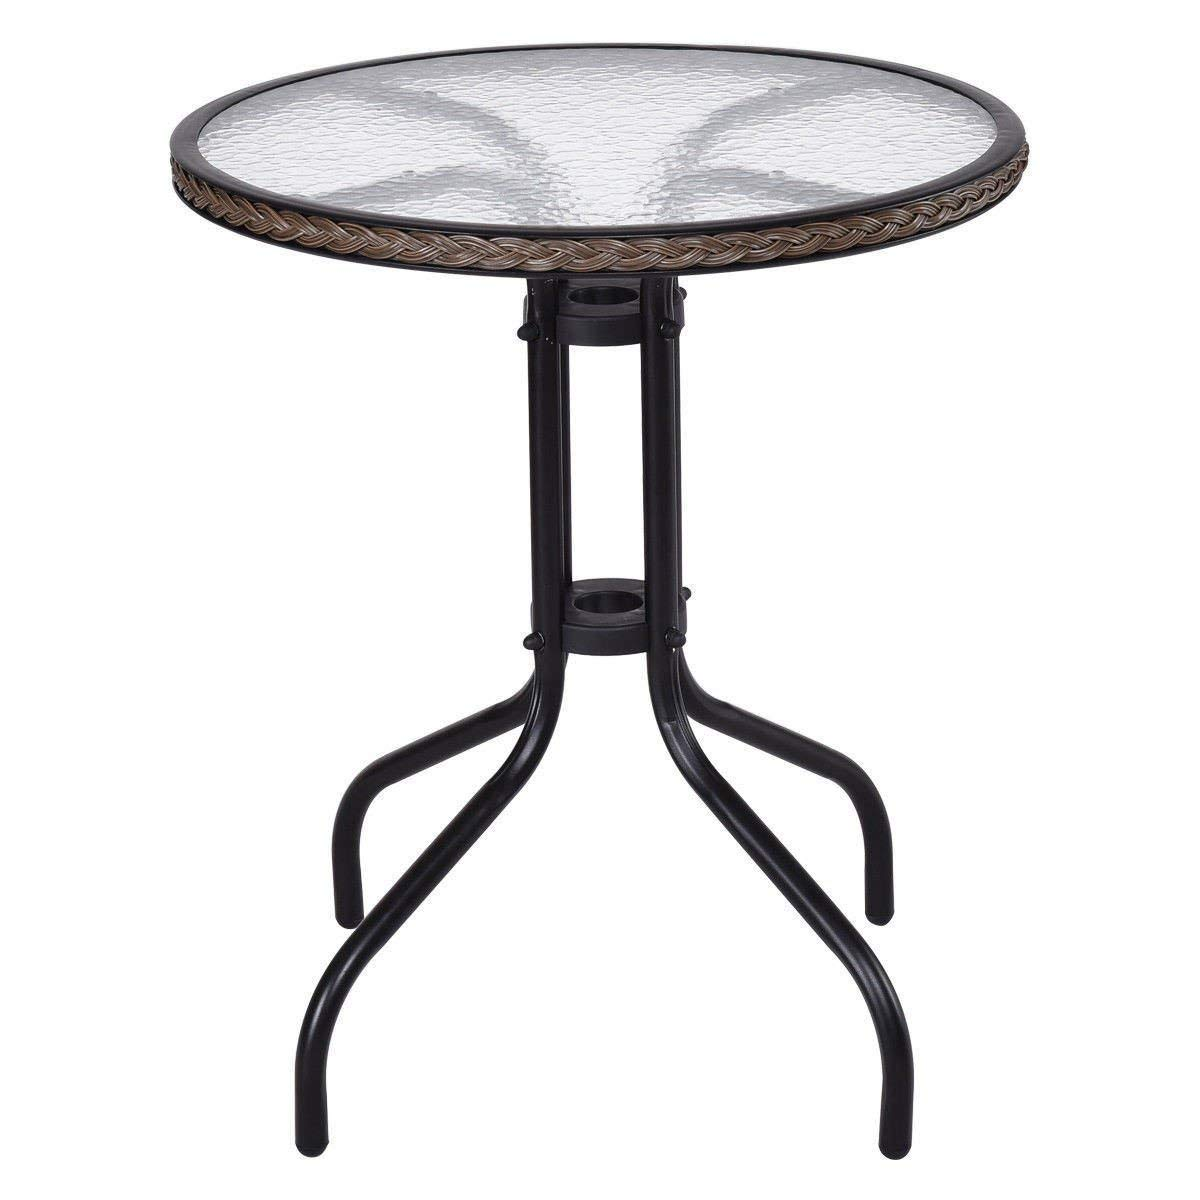 Round Glass Top Coffee Table Cheap Small Round Glass Top Coffee Table Find Small Round Glass